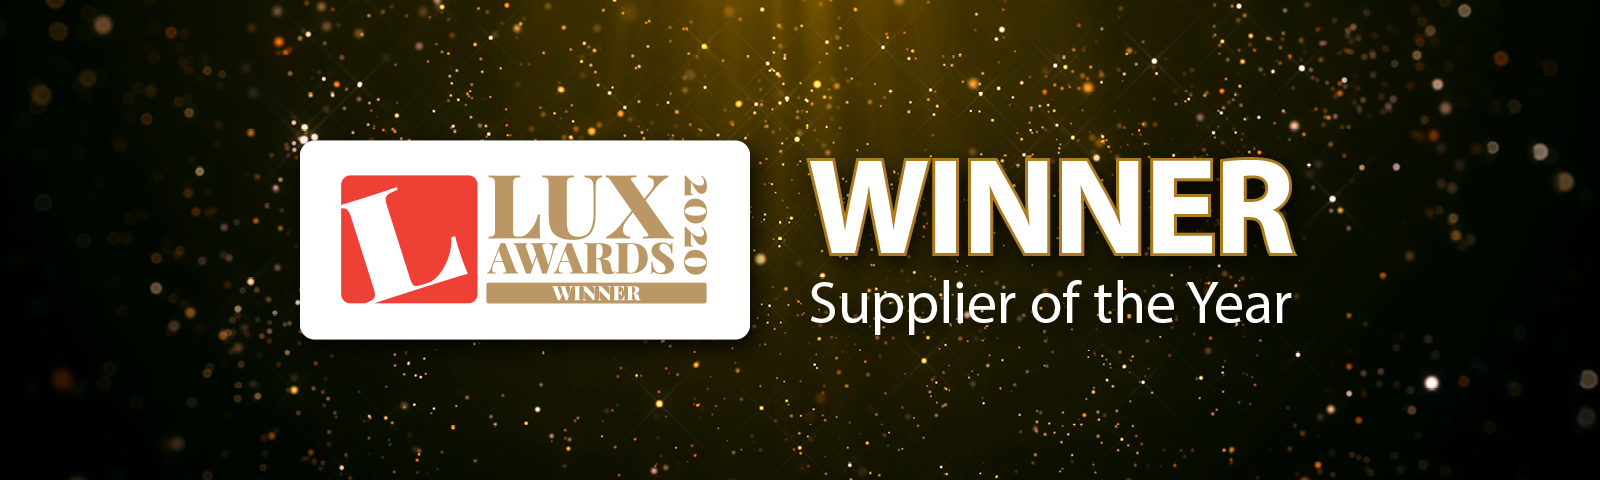 Thorlux celebrates winning Supplier of the Year at the Lux Awards 2020 gallery image